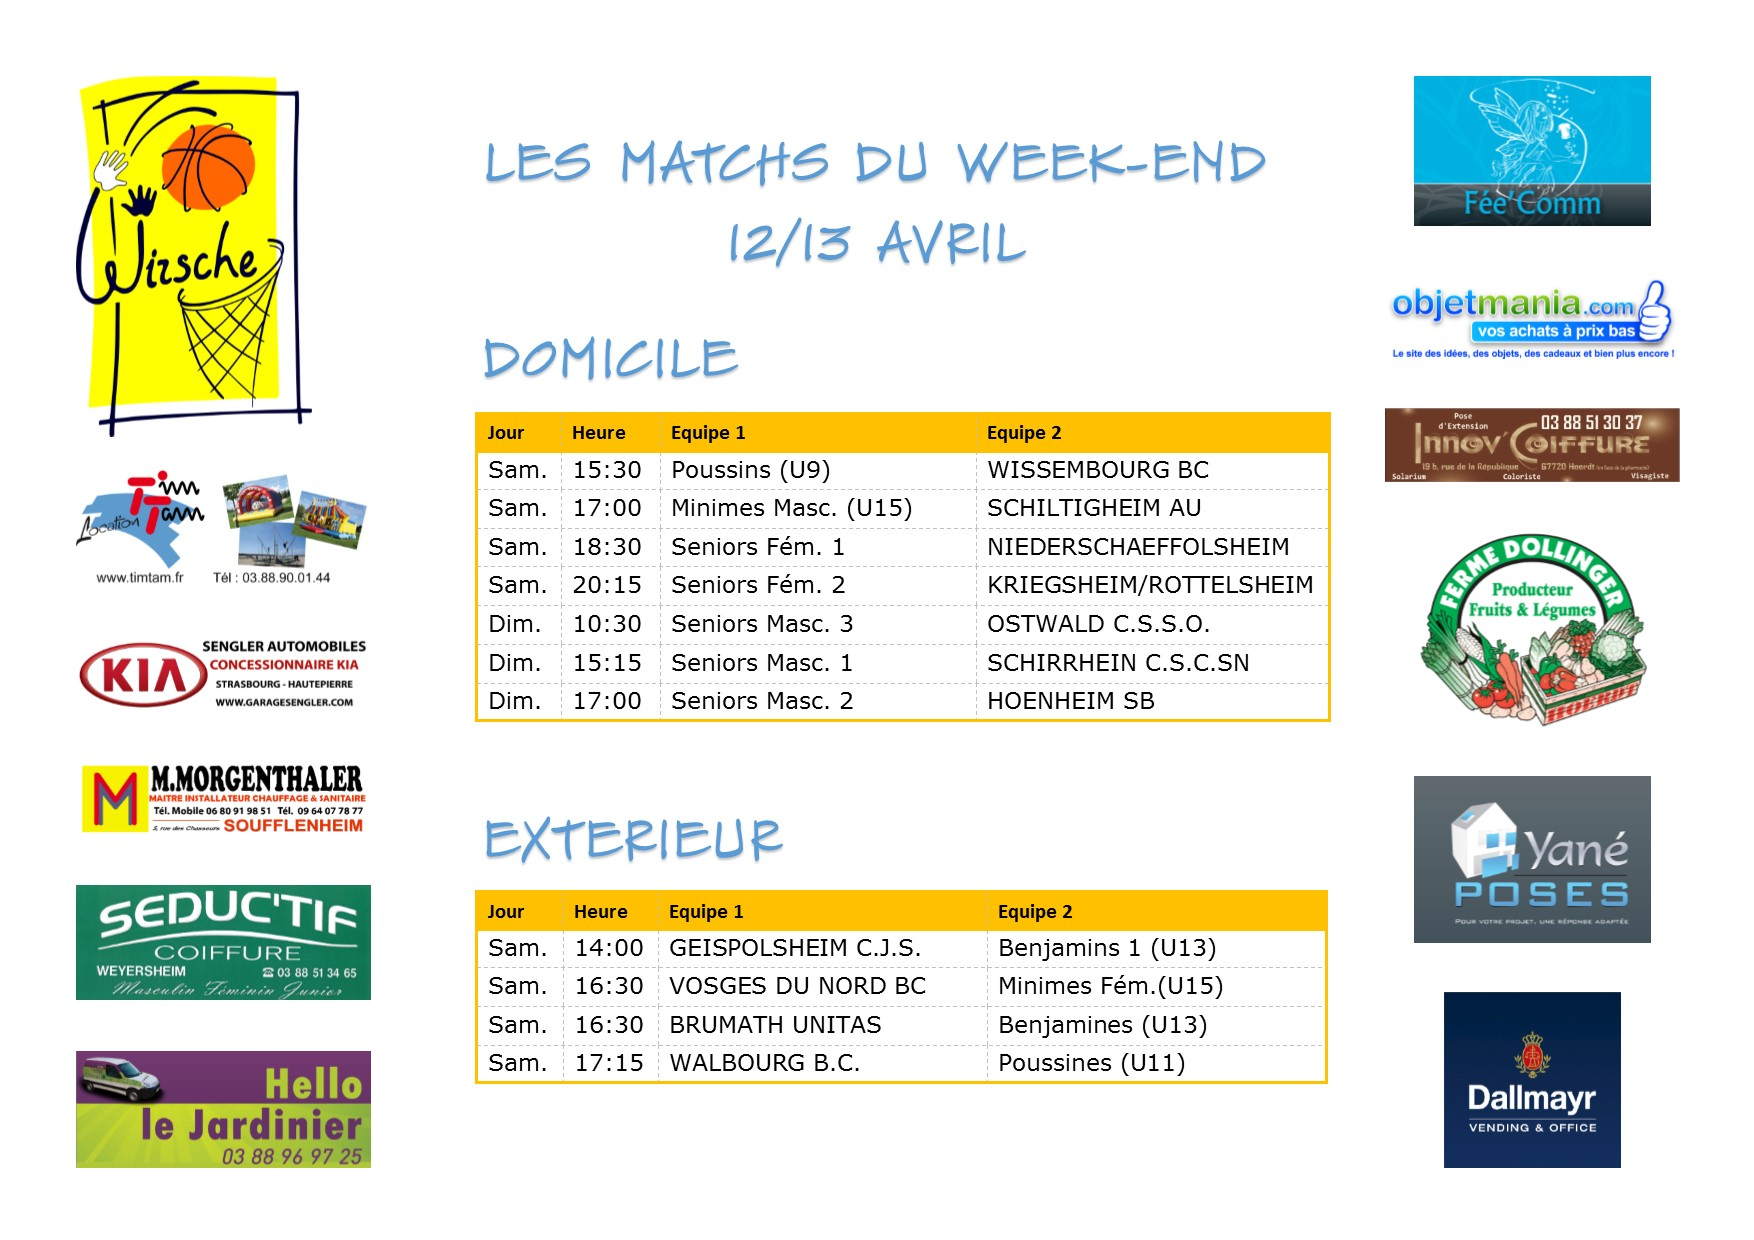 Matchs du week-end 12-13 avril